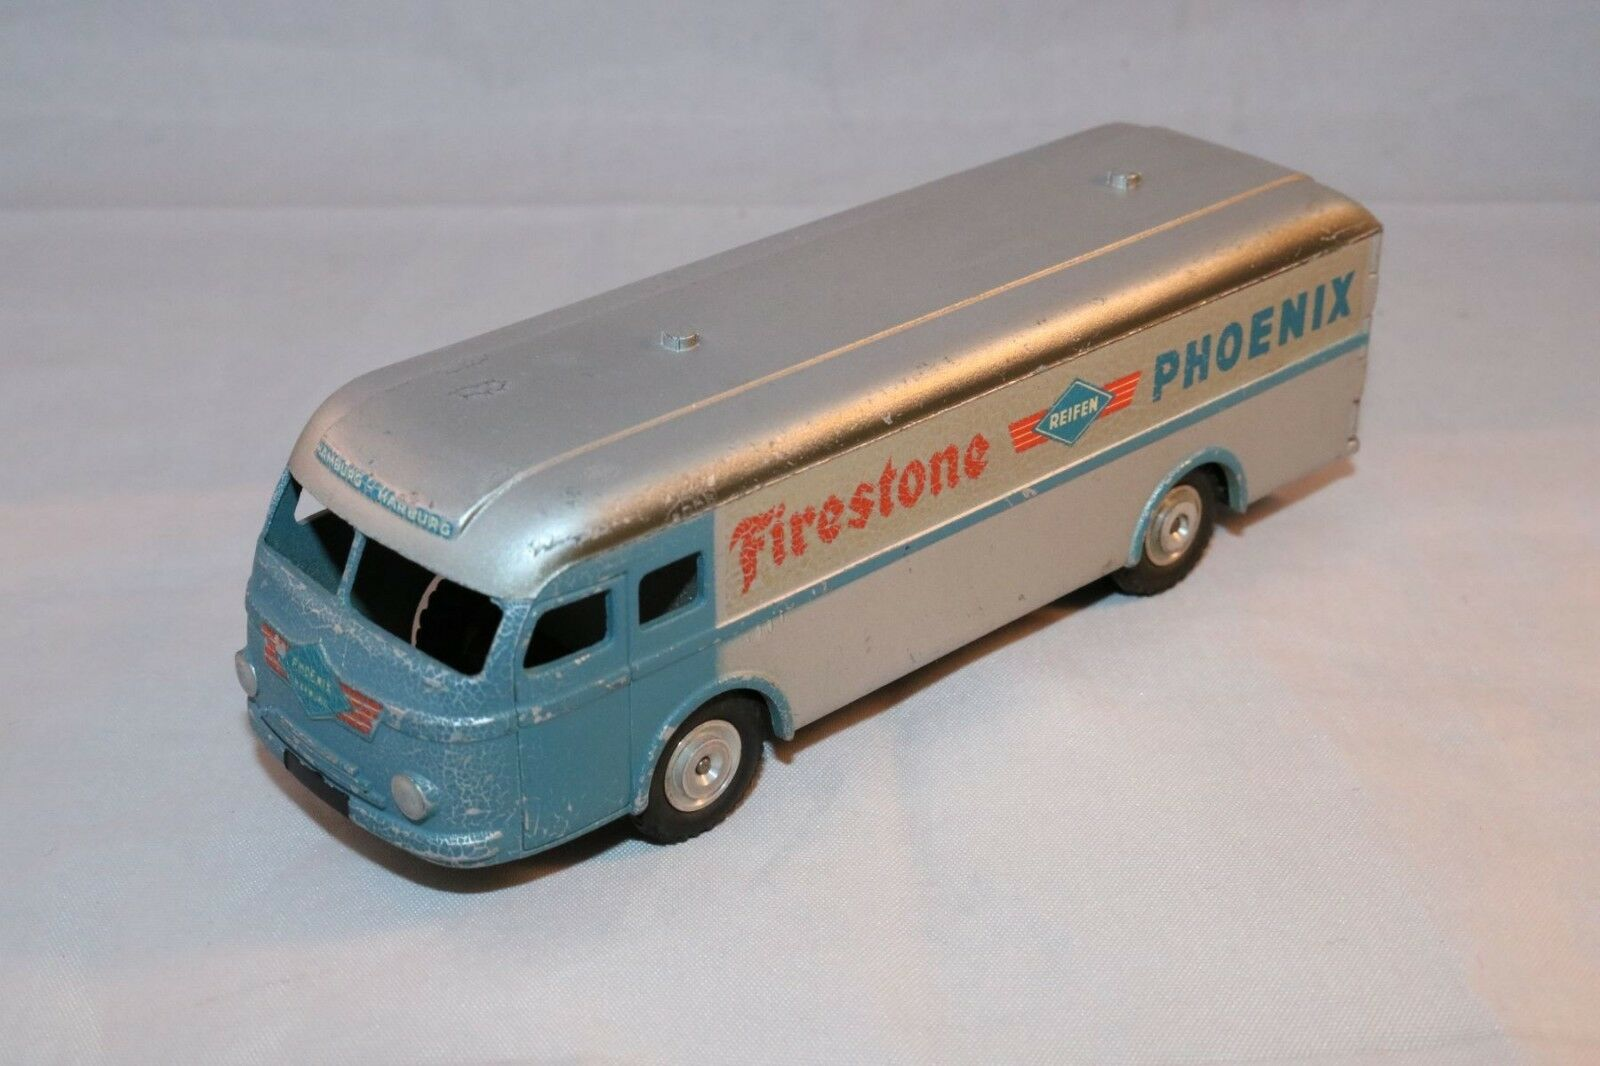 Marklin 5524 Phoenix kastenwagen in excellent plus all original condition scarce